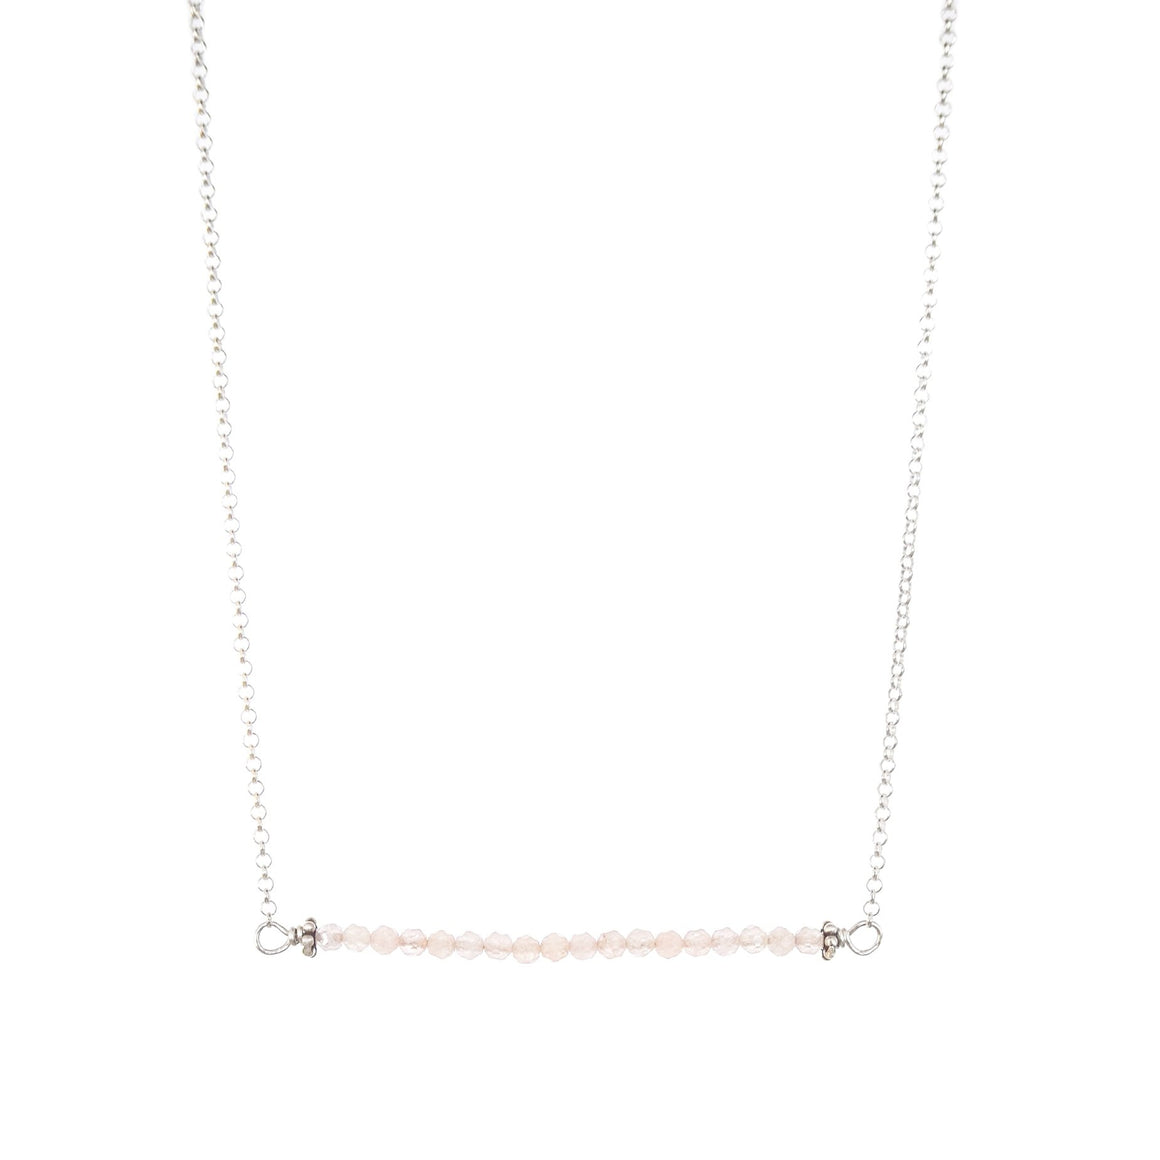 easy layering morganite bar necklace in silver of gold by OSJ in Tucson AZ